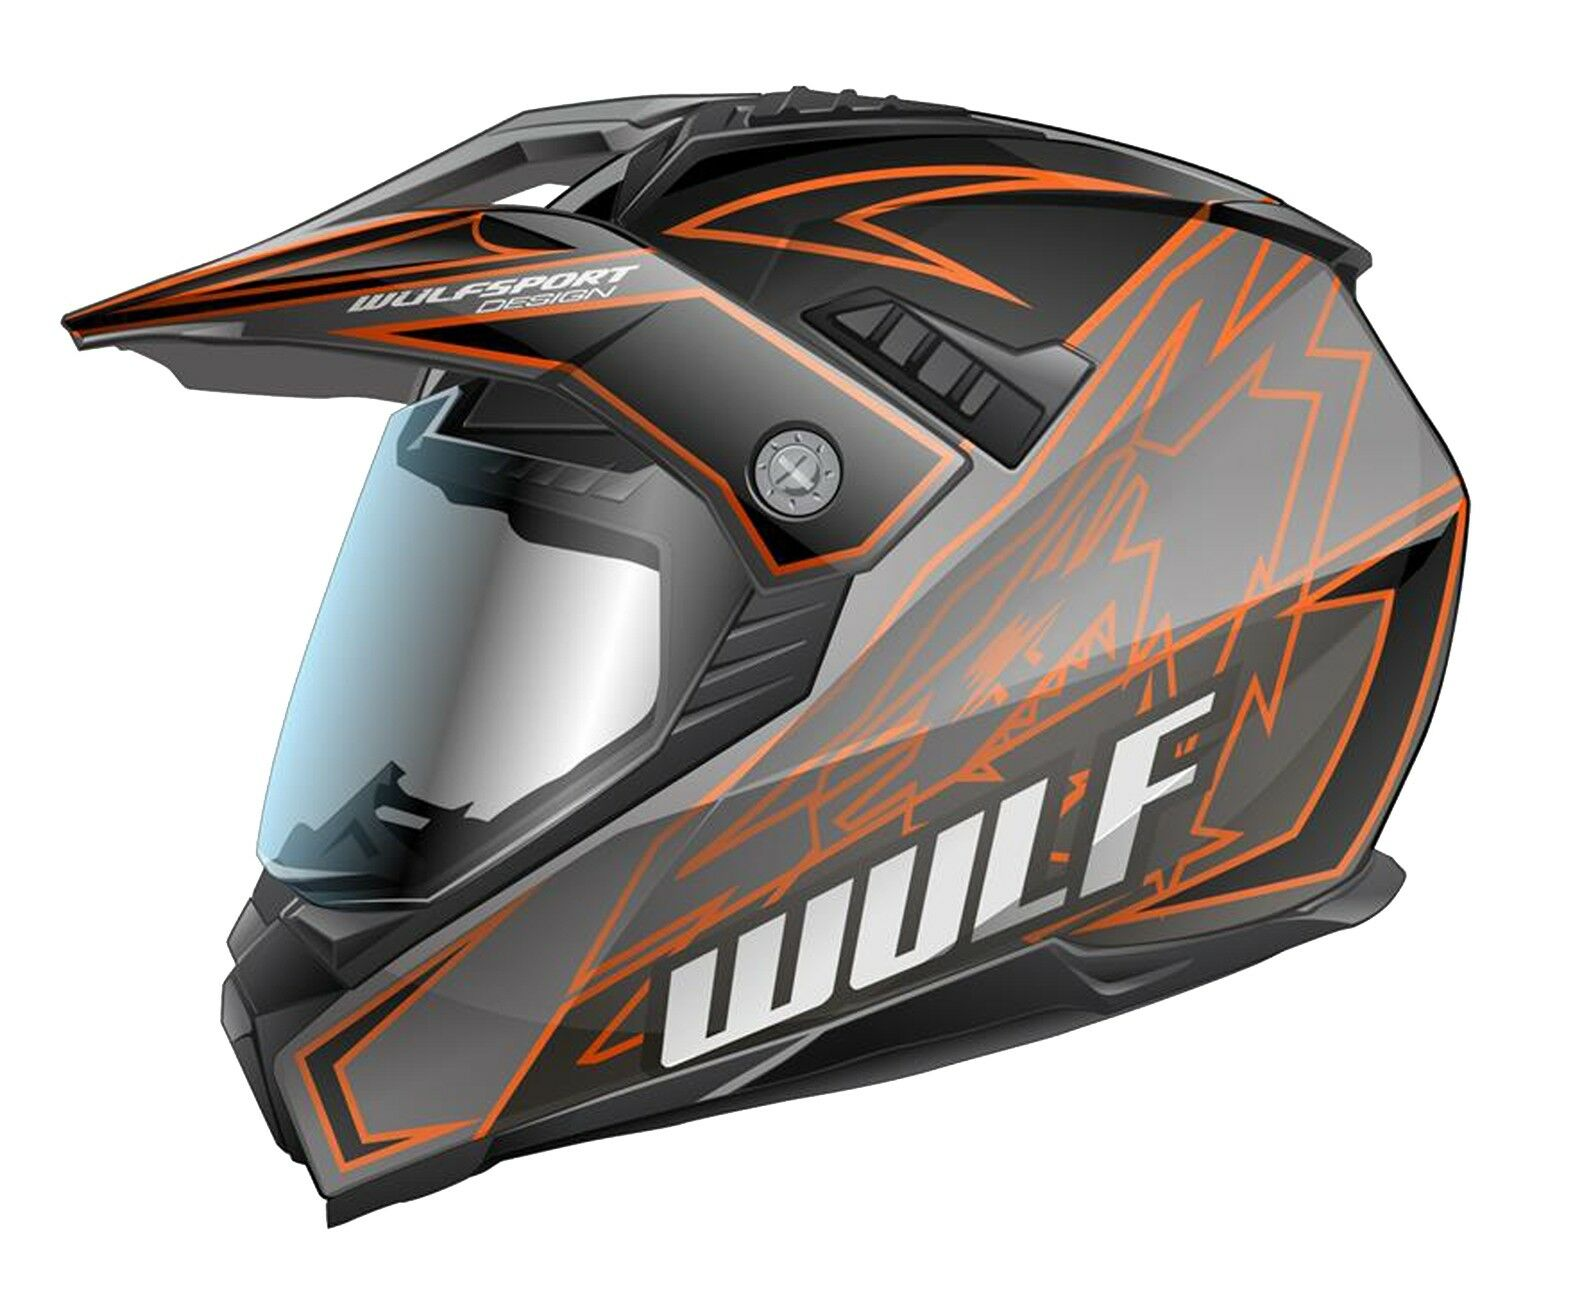 Wulfsport Prima-X Cross Helm XXL 63-64cm Orange Motorrad Quad Bike Enduro MX BMX